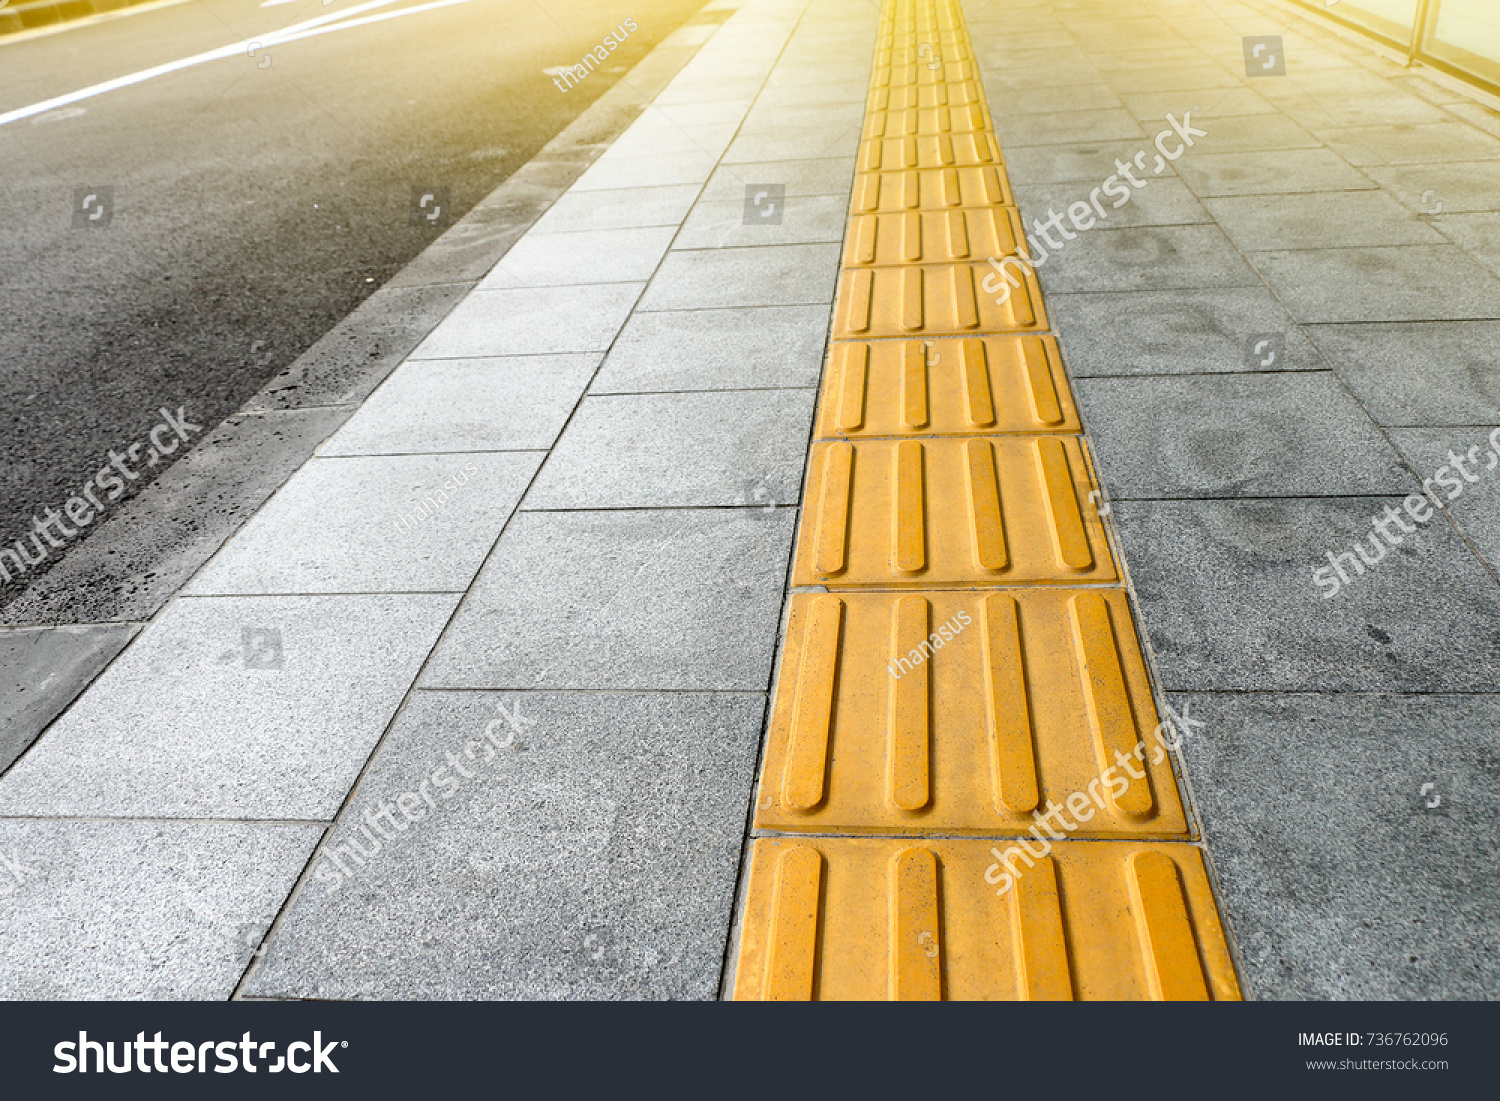 Tactile paving blind handicap on tiles stock photo 736762096 tactile paving for blind handicap on tiles pathway walkway for blindness people dailygadgetfo Image collections